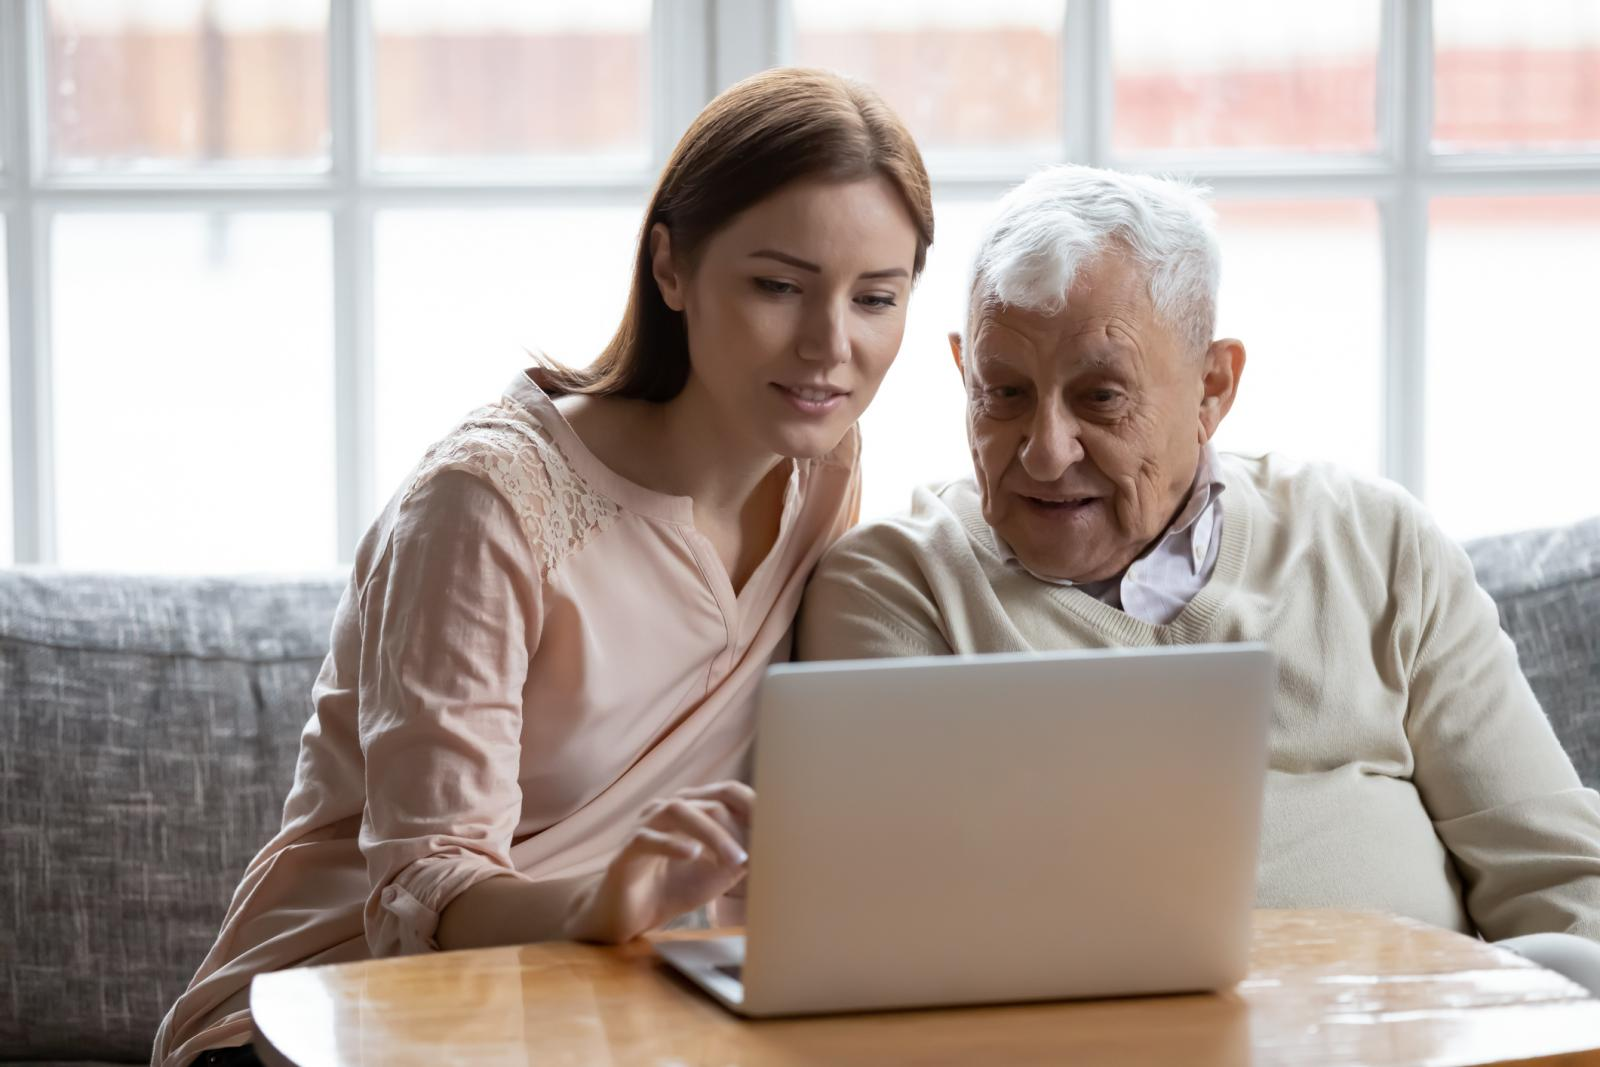 (How to) support digital engagement among older people at risk of isolation